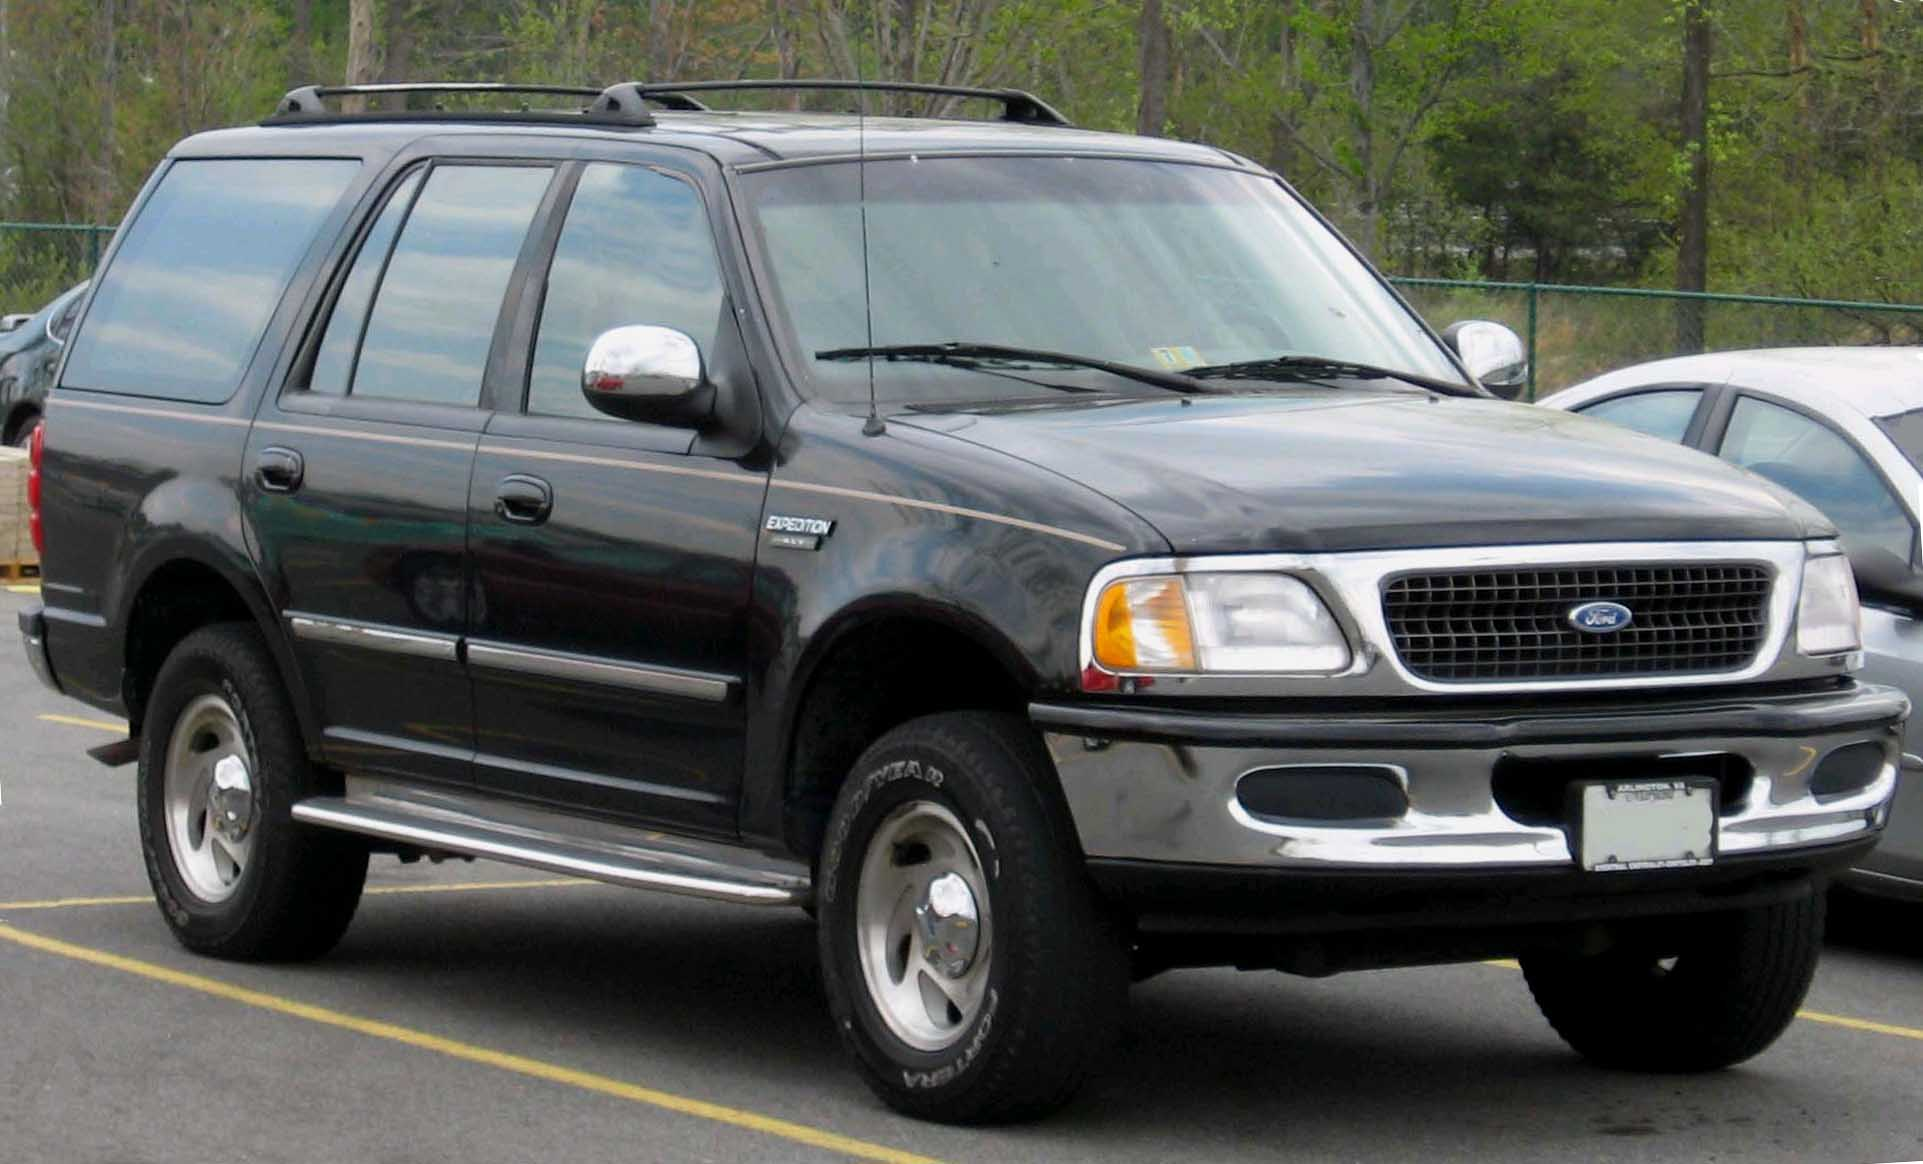 Ford Expedition EL #11